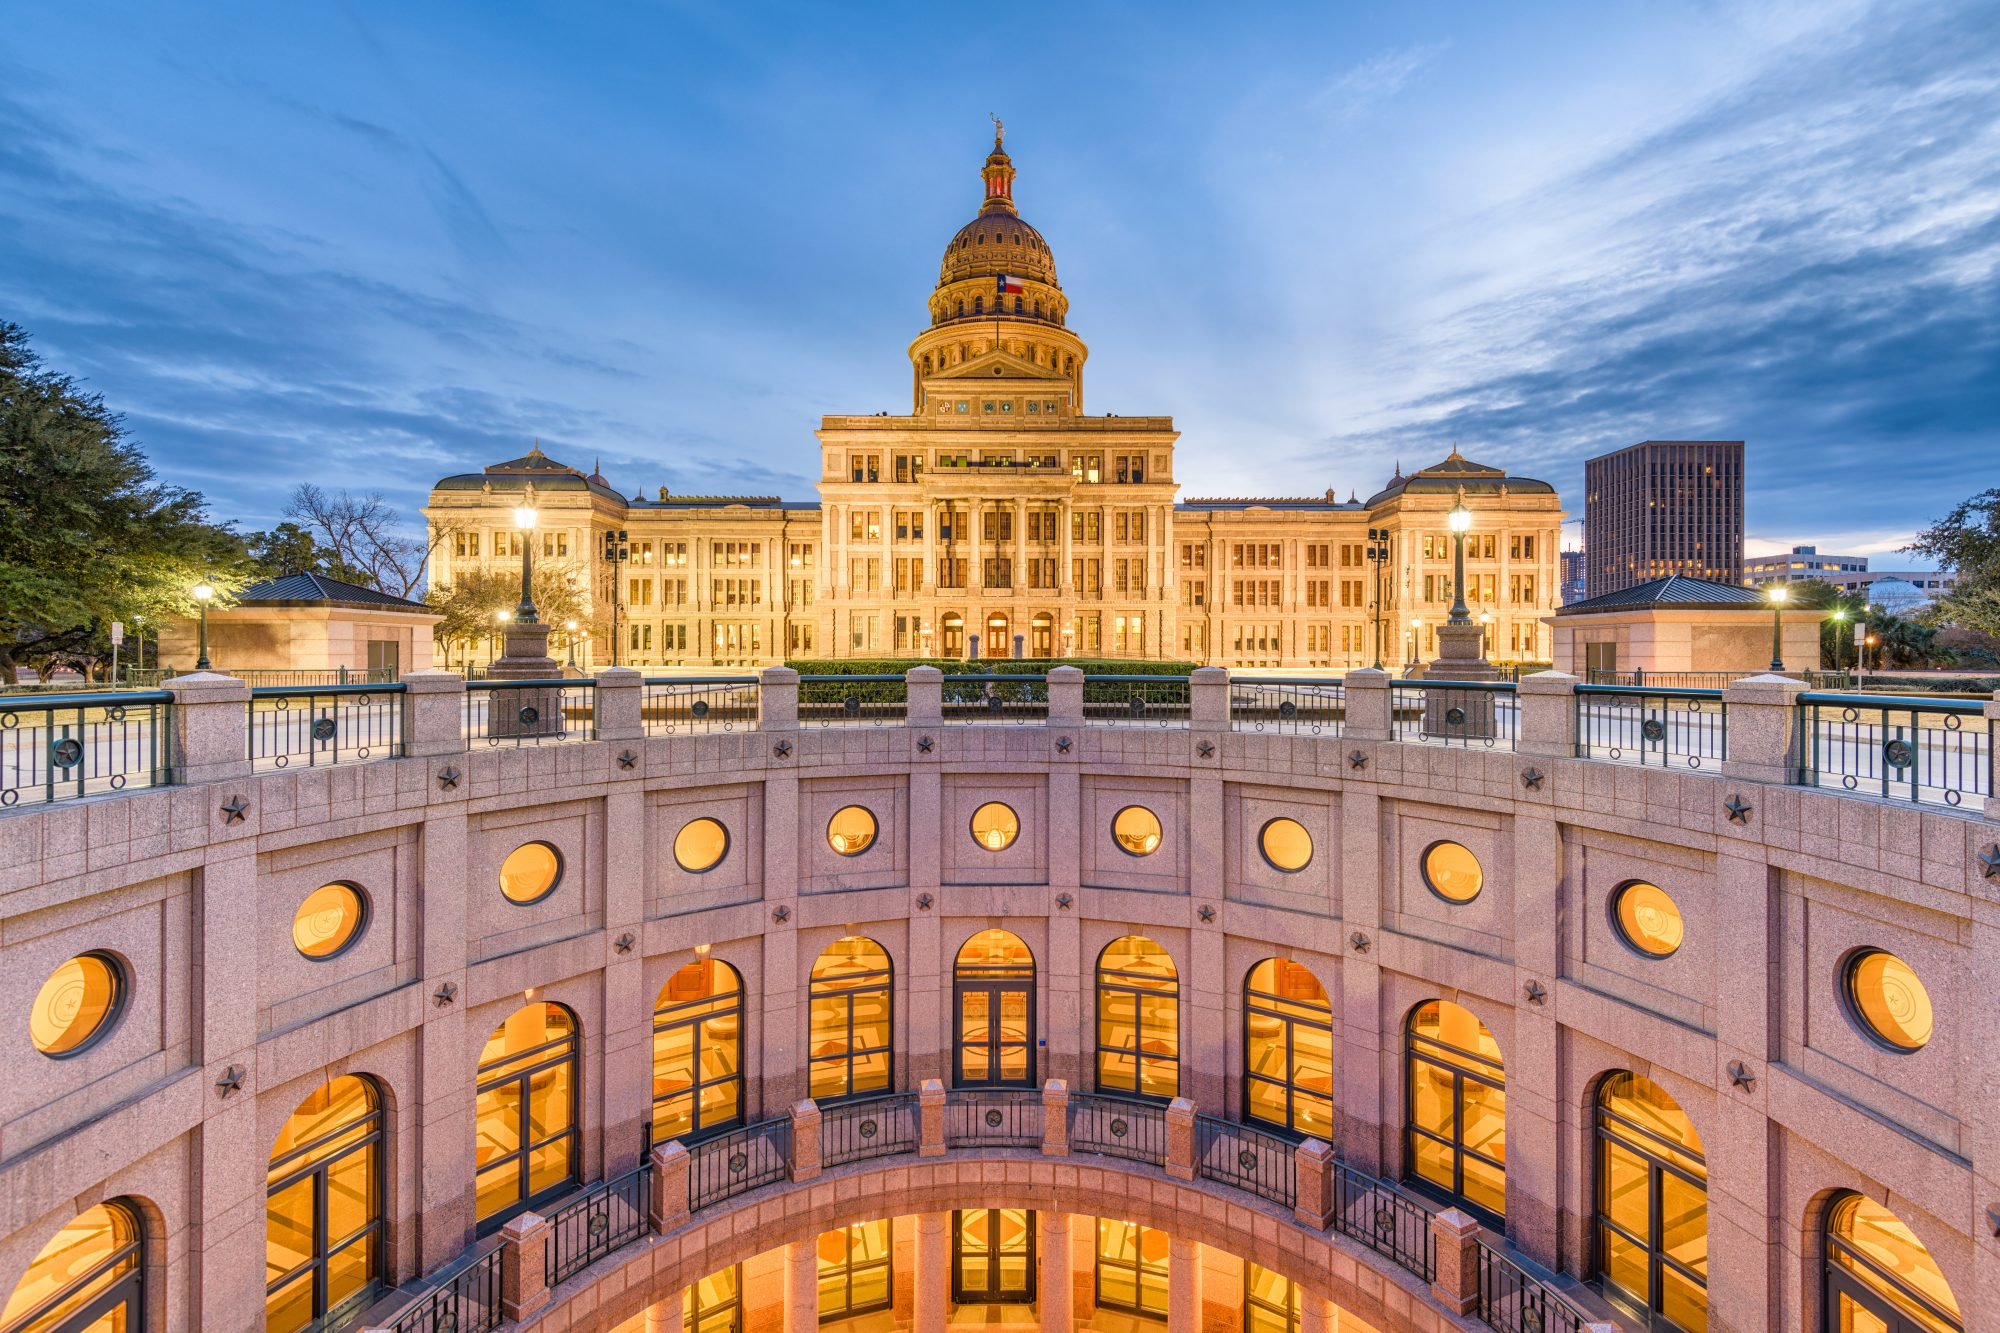 Austin, Texas at the Texas State Capitol